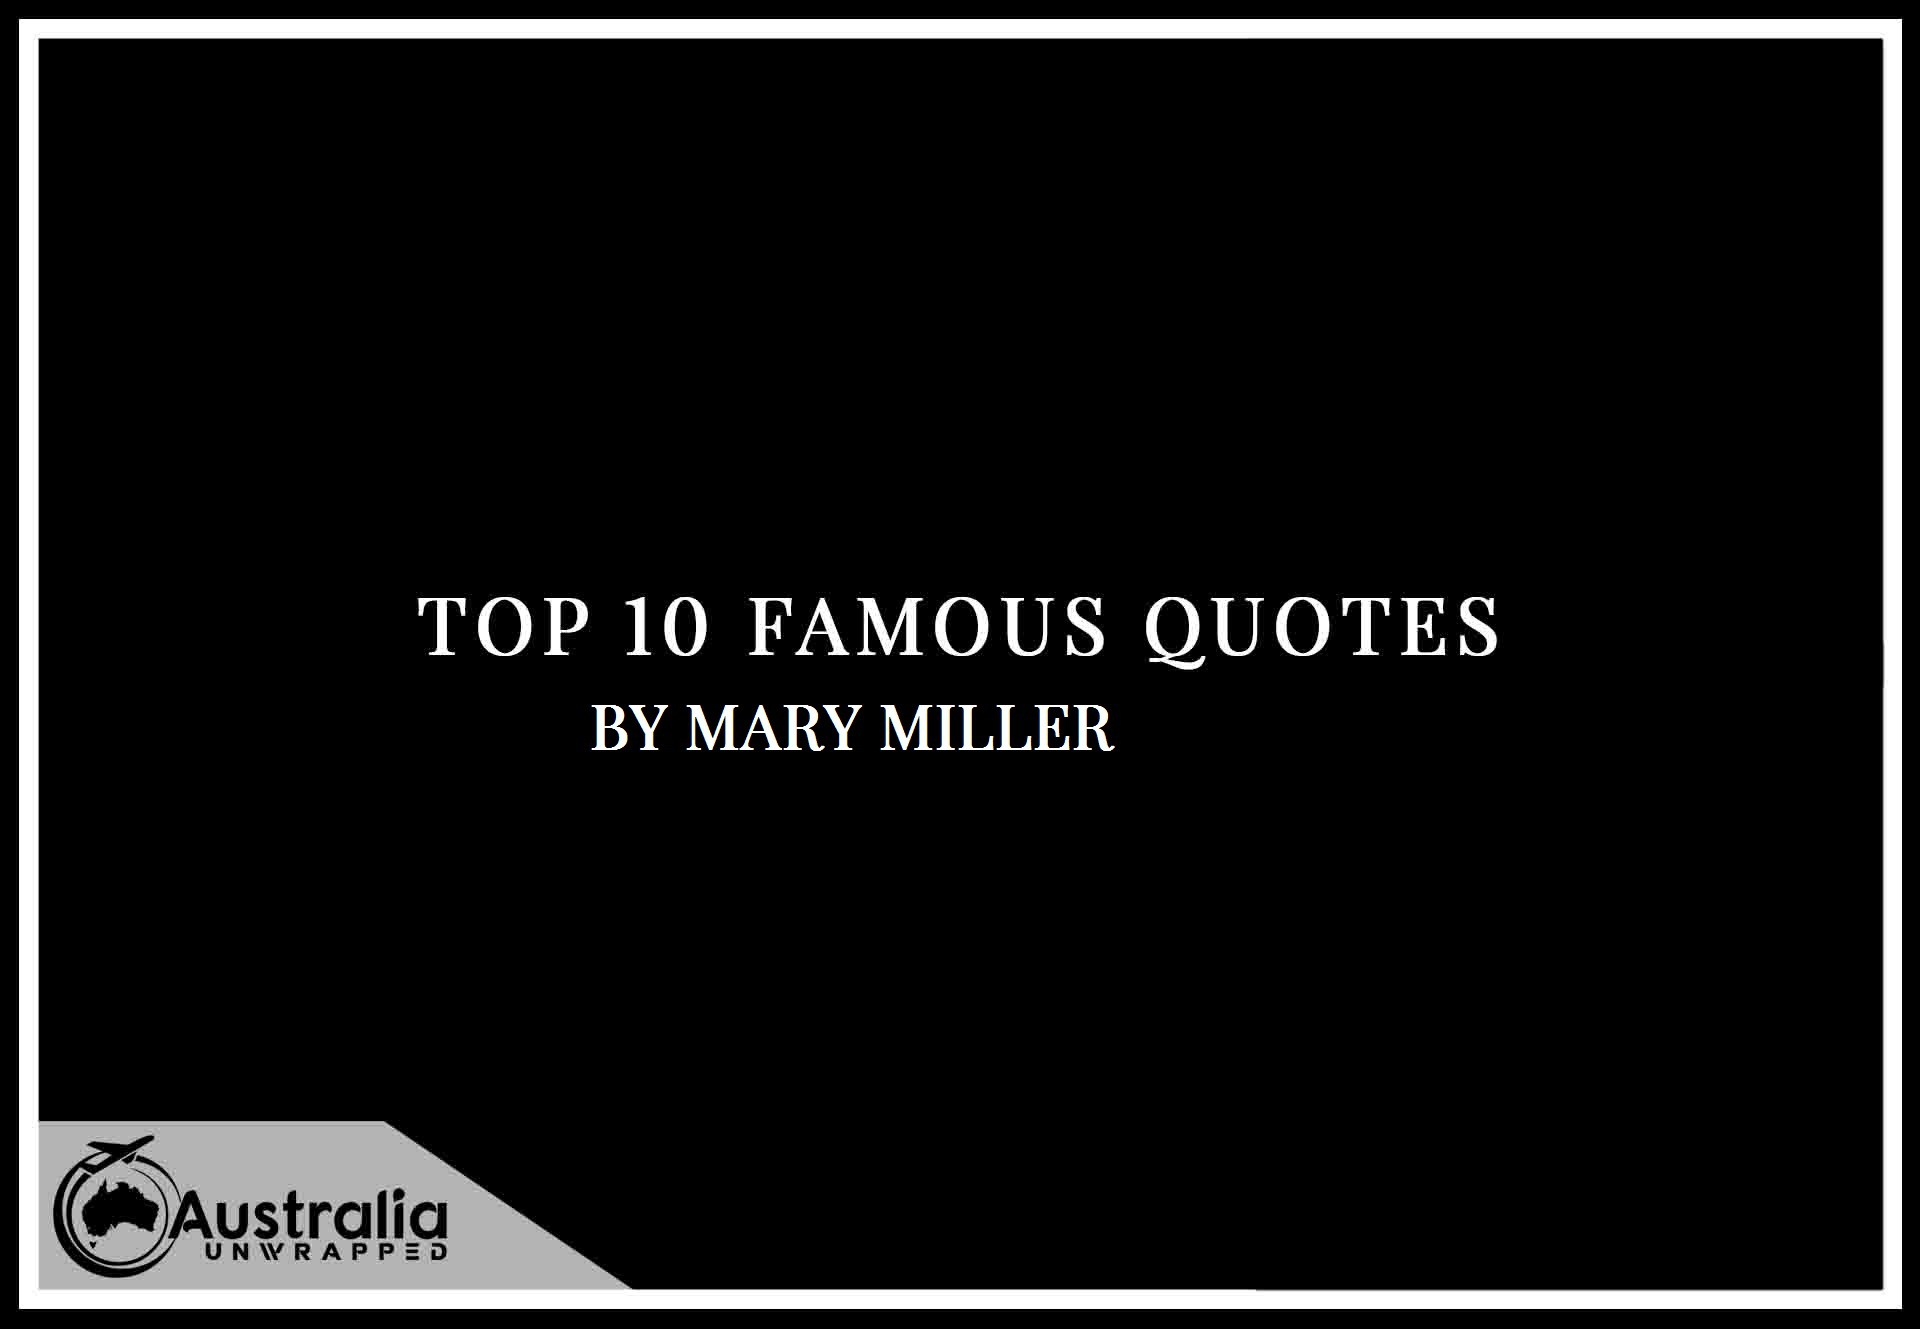 Mary Miller's Top 10 Popular and Famous Quotes